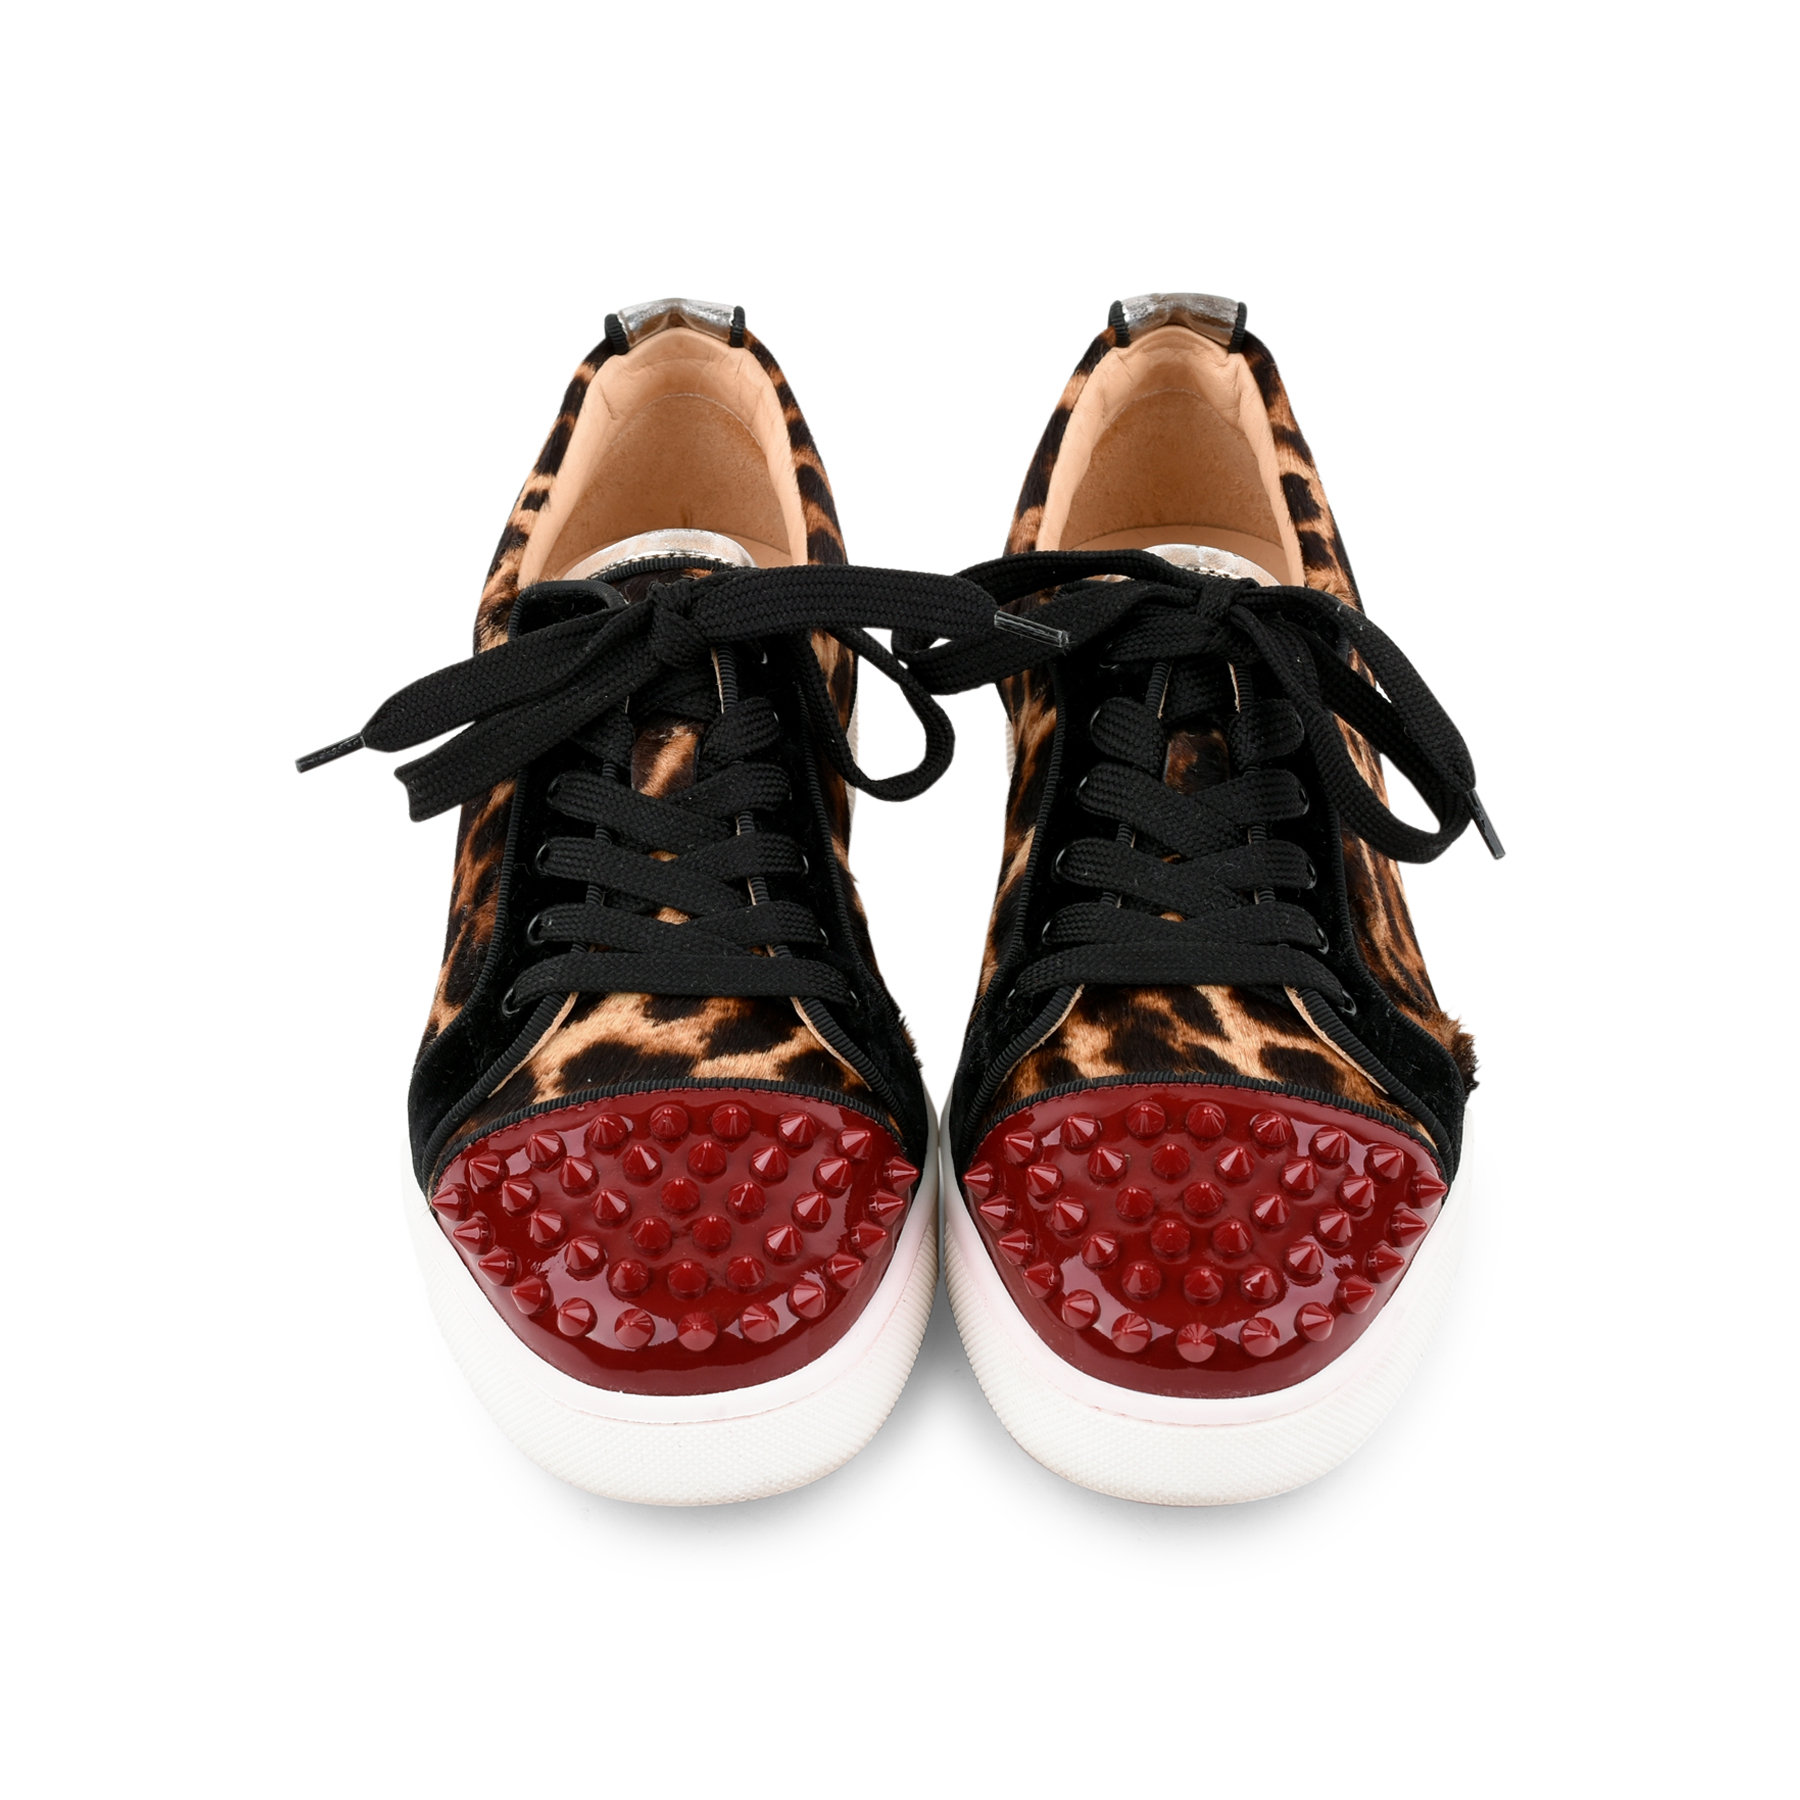 662b94c9f40 Authentic Second Hand Christian Louboutin Louis Junior Leopard Spike  Trainers (PSS-200-01271)